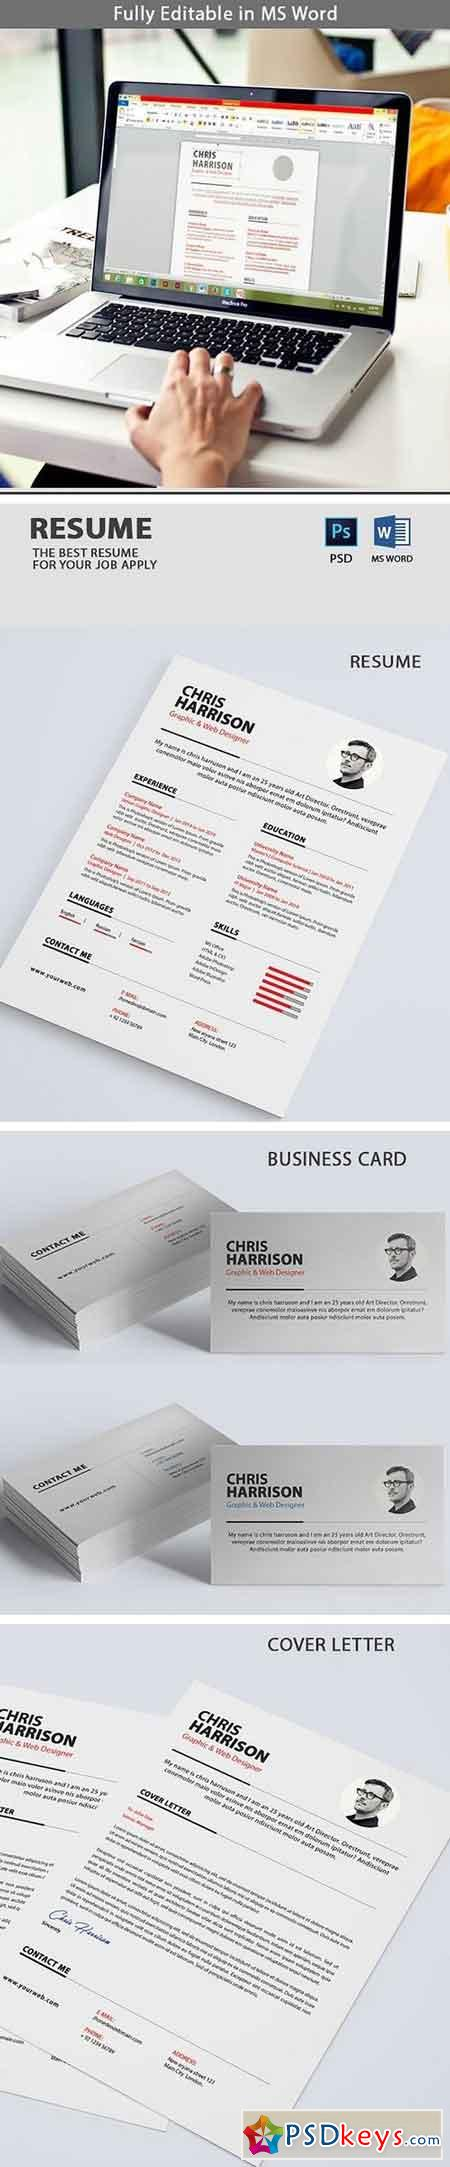 Clean Resume With Business Card 2077083